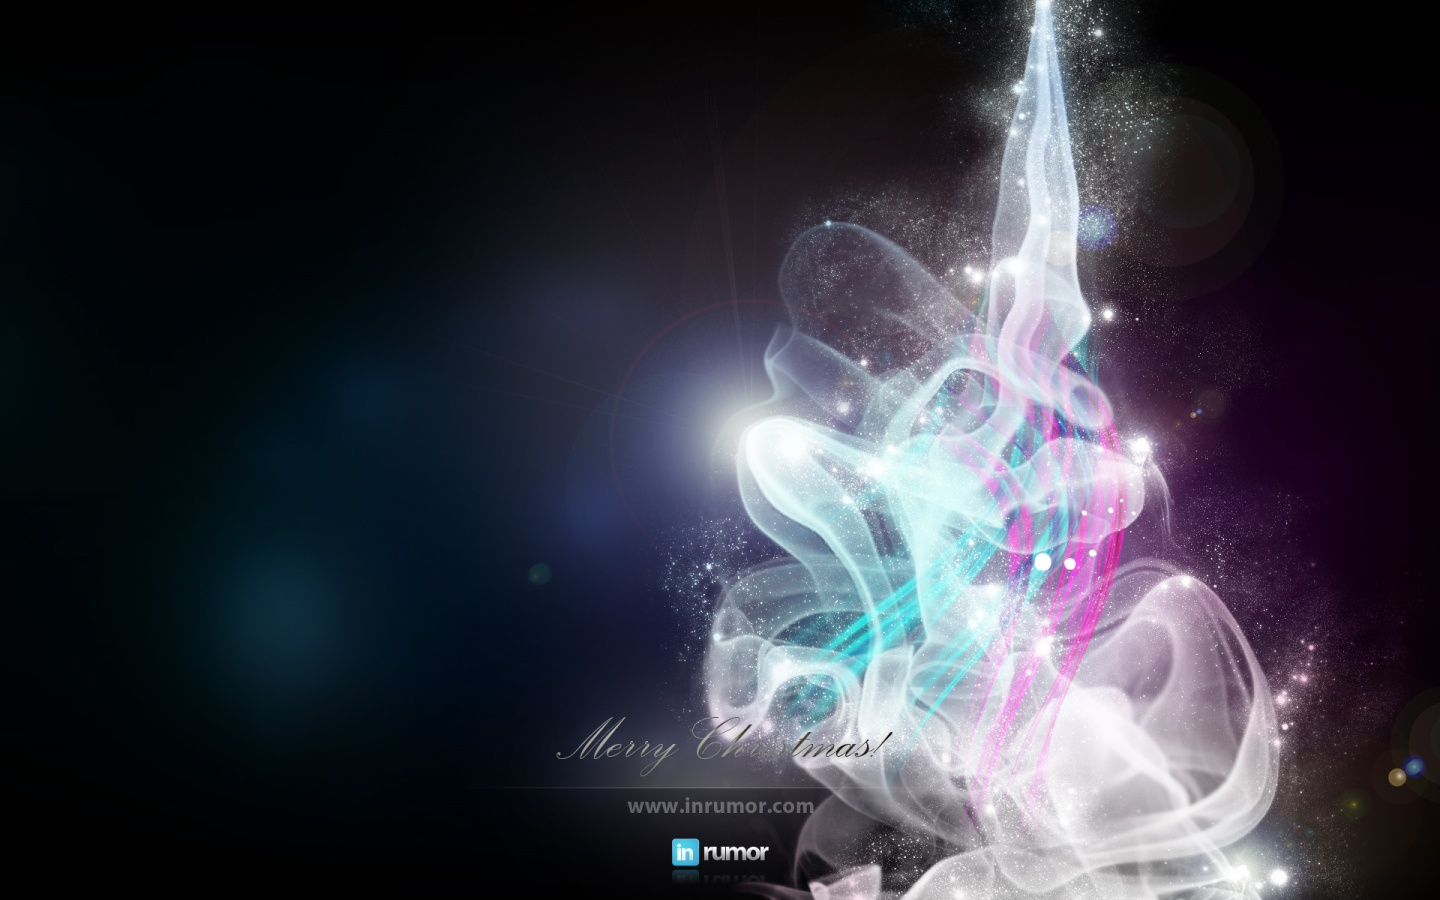 christmas wallpapers 1440 x - photo #15